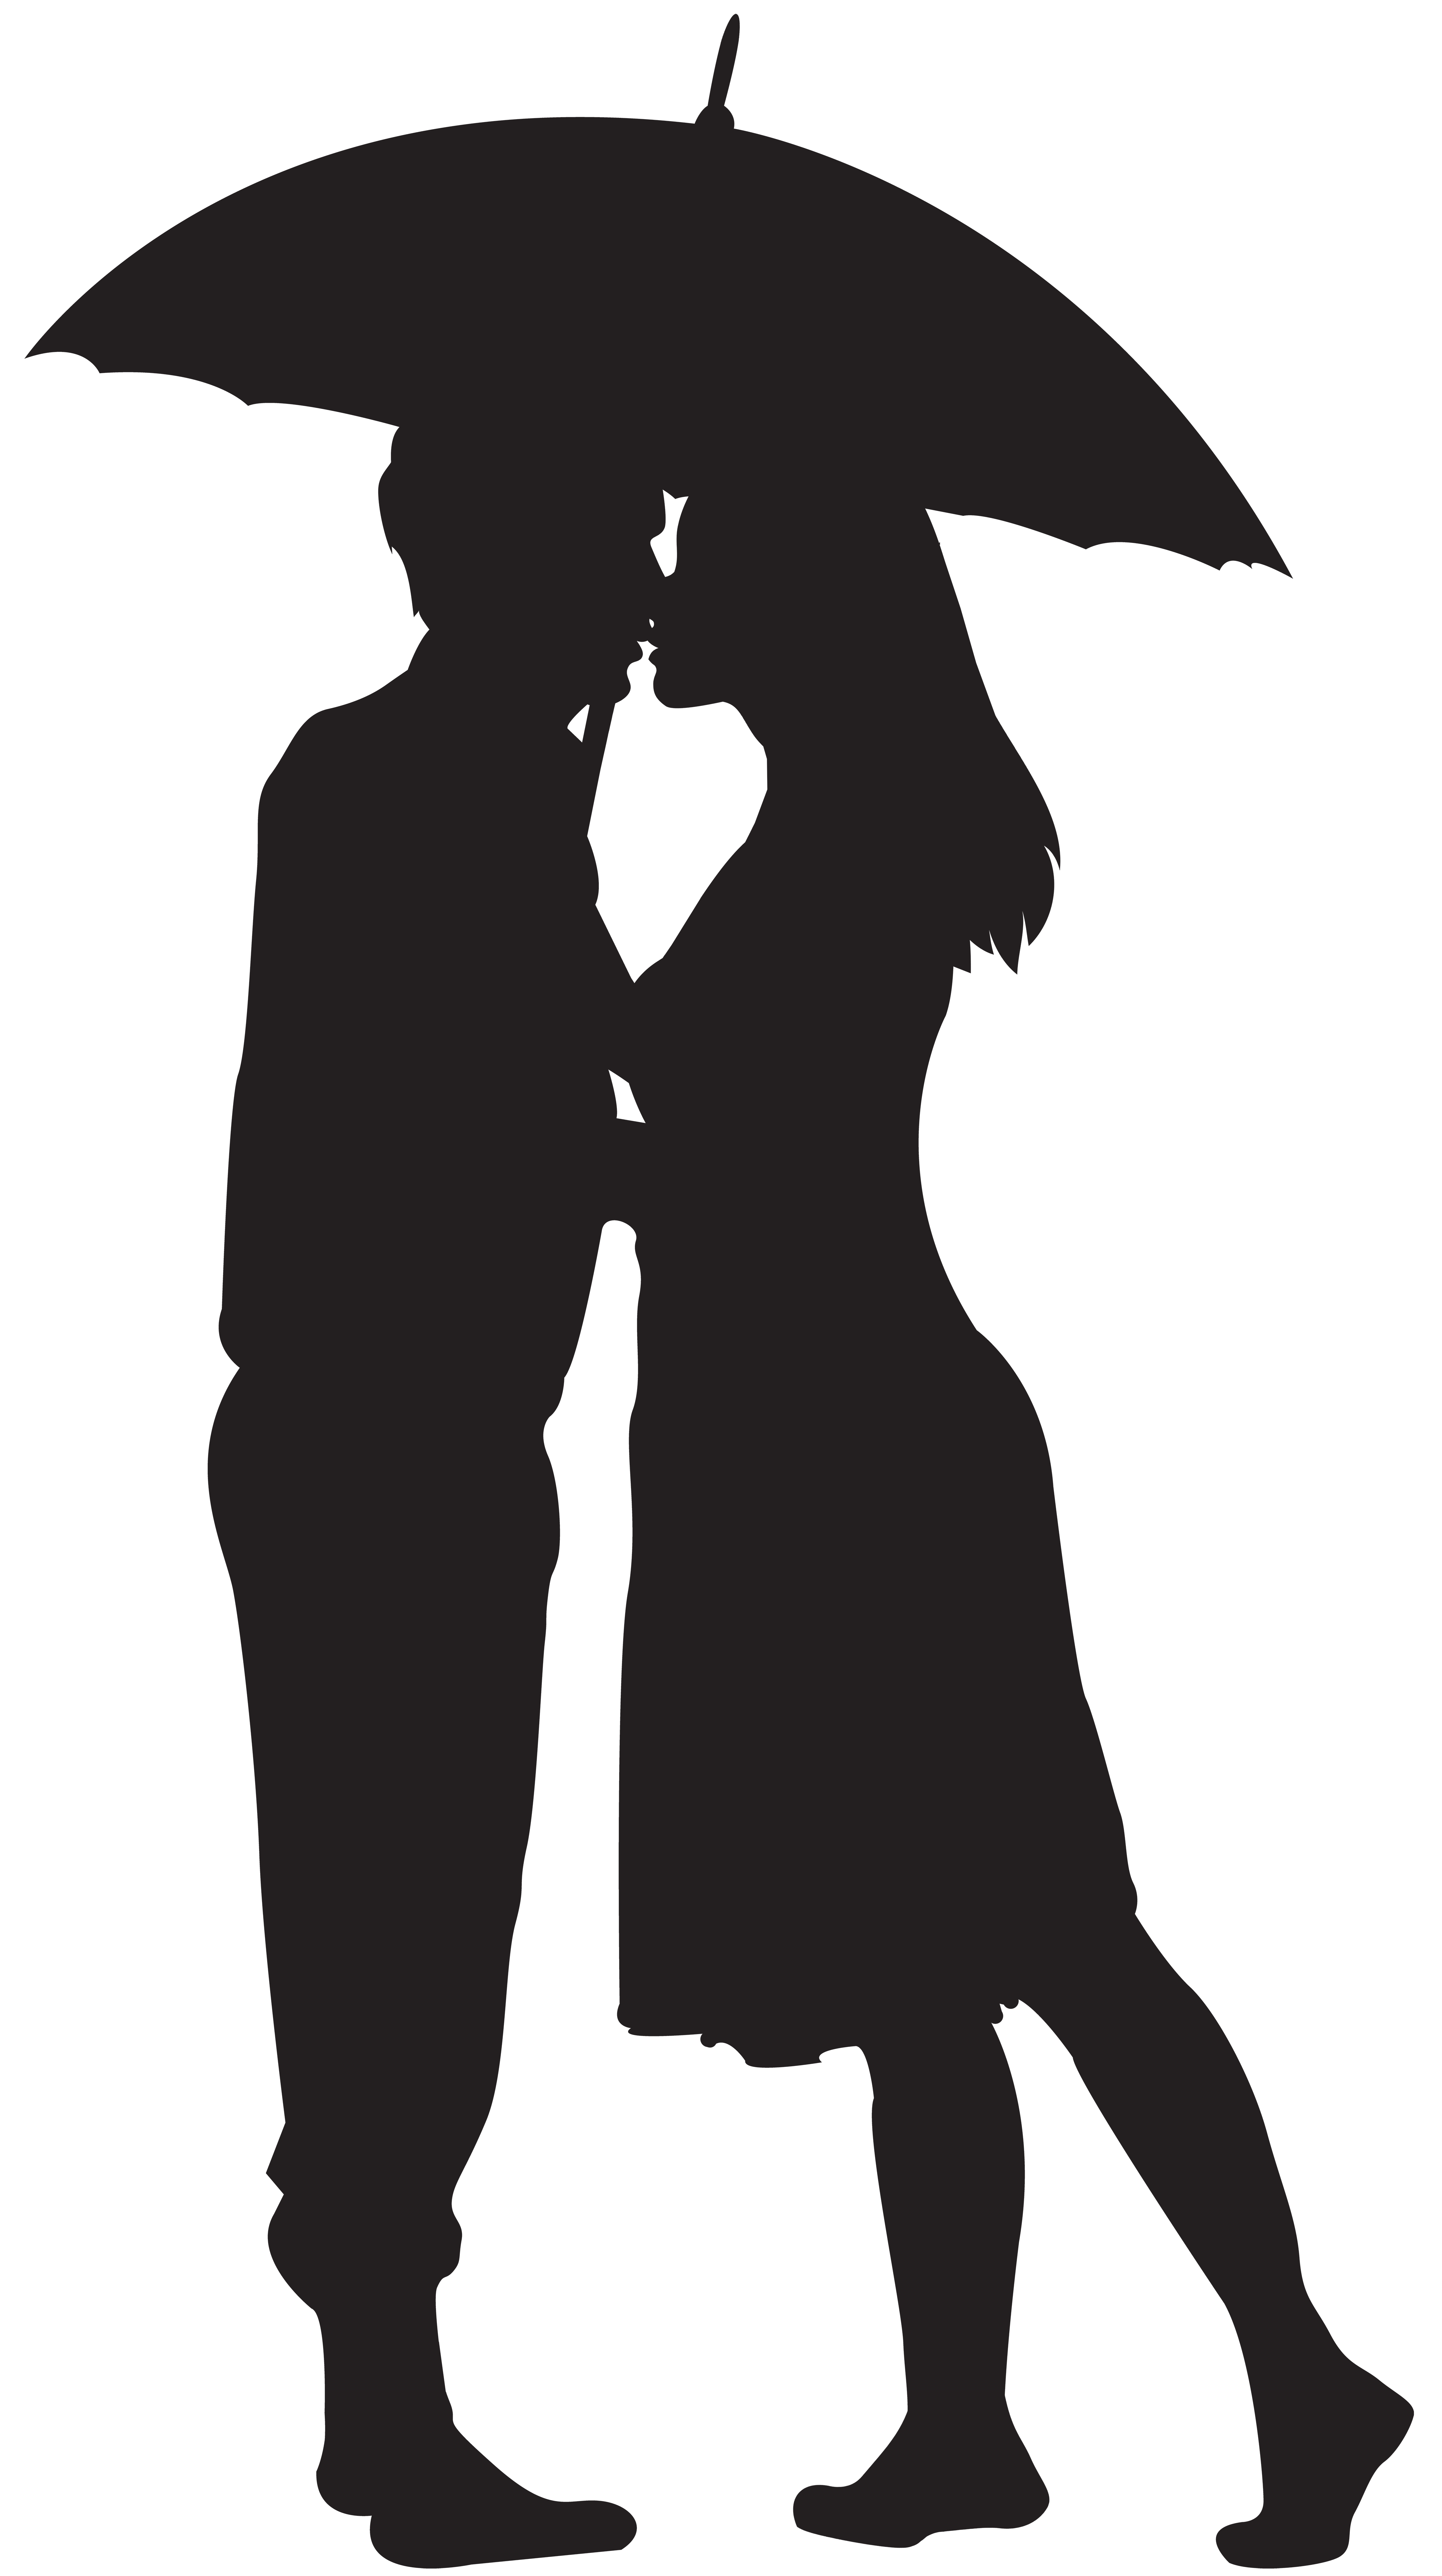 Couple clipart black and white. Loving silhouette png clip